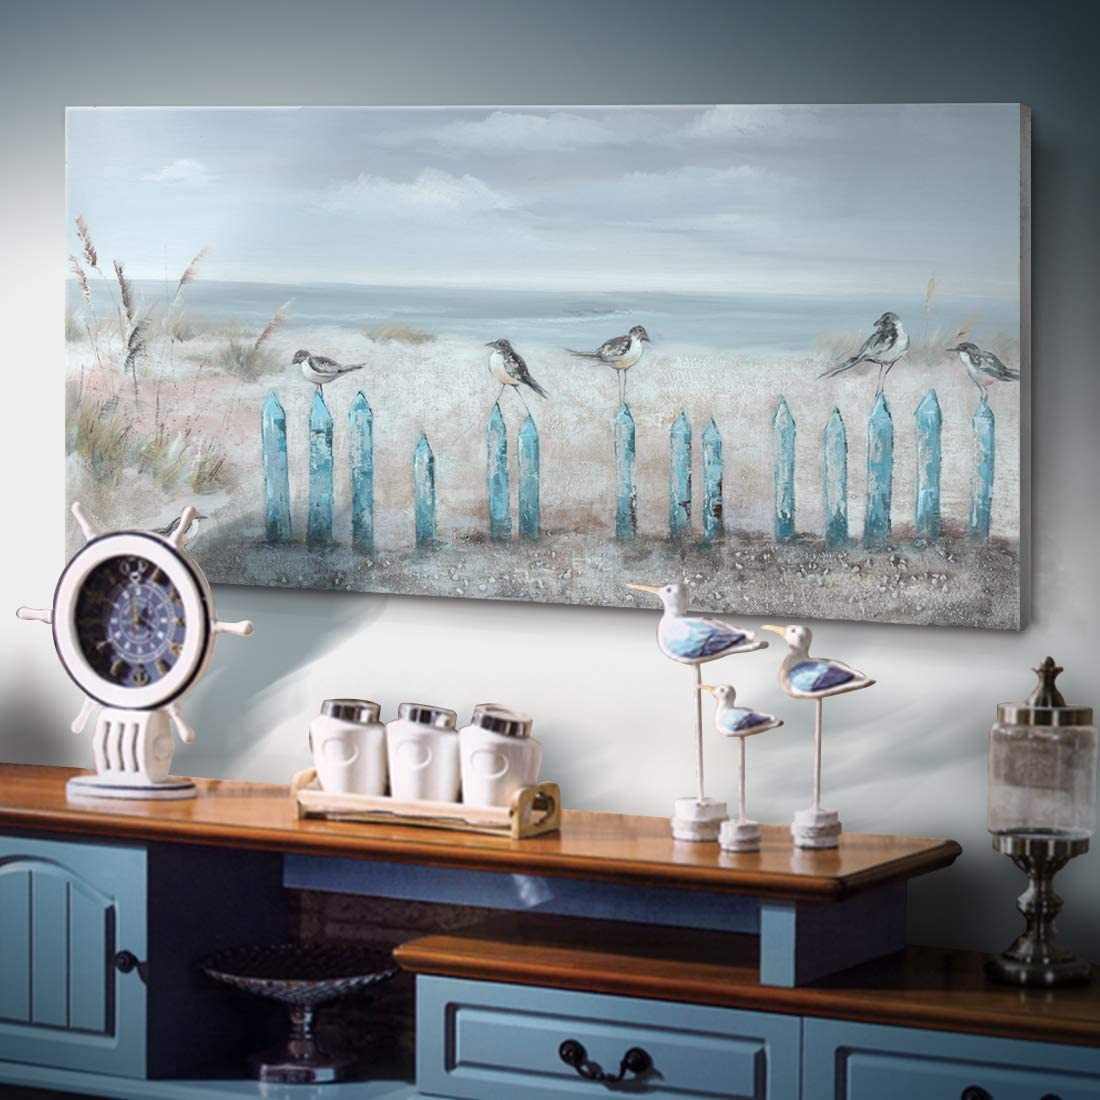 Ejart Large Living Room Wall Art Hand-Painted 3D Seascape Canvas Oil Painting Ocean Beach Coastal Picture Artwork for Home Decorations Bedroom Office Décor 48x24inch